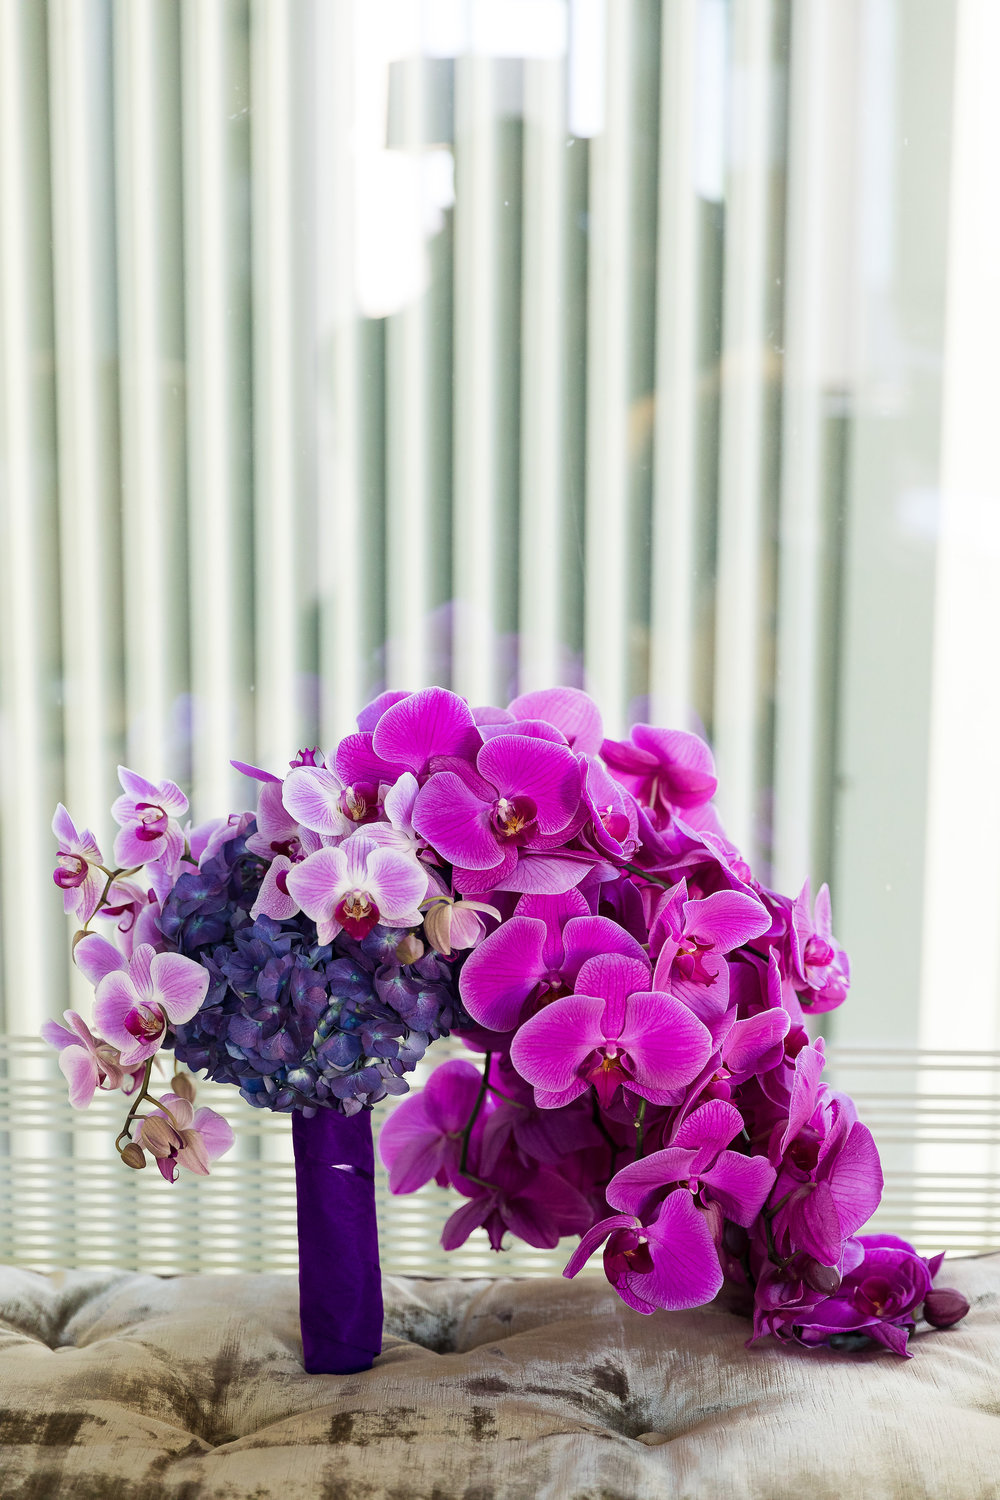 Purple and fuchsia bridal bouquet.  Wedding Planner:  Andrea Eppolito Events  |   Photography  Brian Leahy   |  Videography  HOO Films   |  Venue & Catering:  Mandarin Oriental  / Waldorf Astoria |  Floral & Decor:  Destinations by Design    |  Lighting:  LED Unplugged  |  Music:  DJ Breeze II   |  Hair & Make Up:  Amelia C & Co